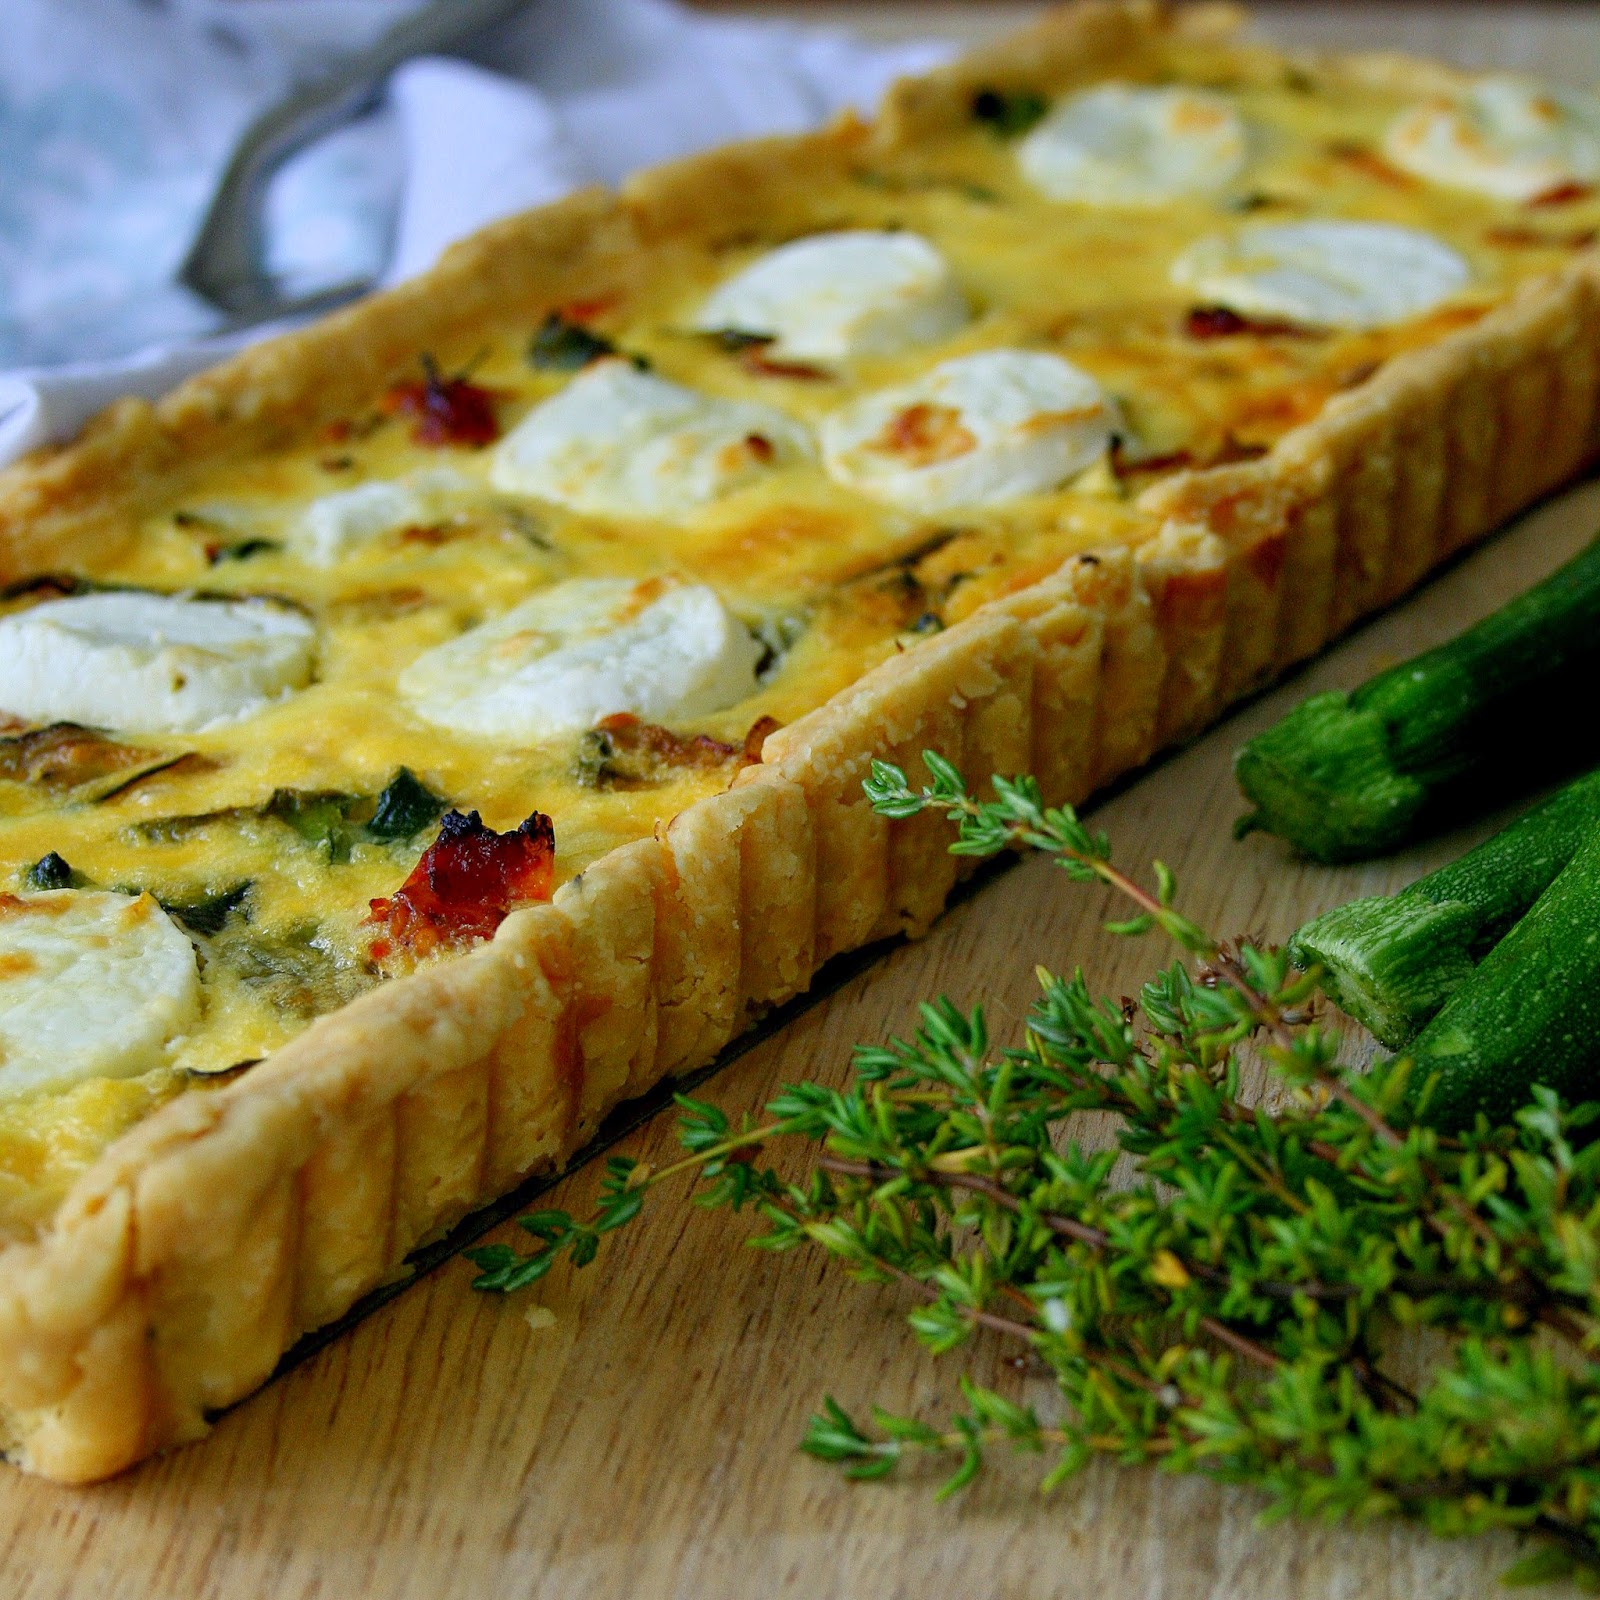 Cupcakes & Couscous: BABY MARROW, SUNDRIED TOMATO and CHEVIN TART